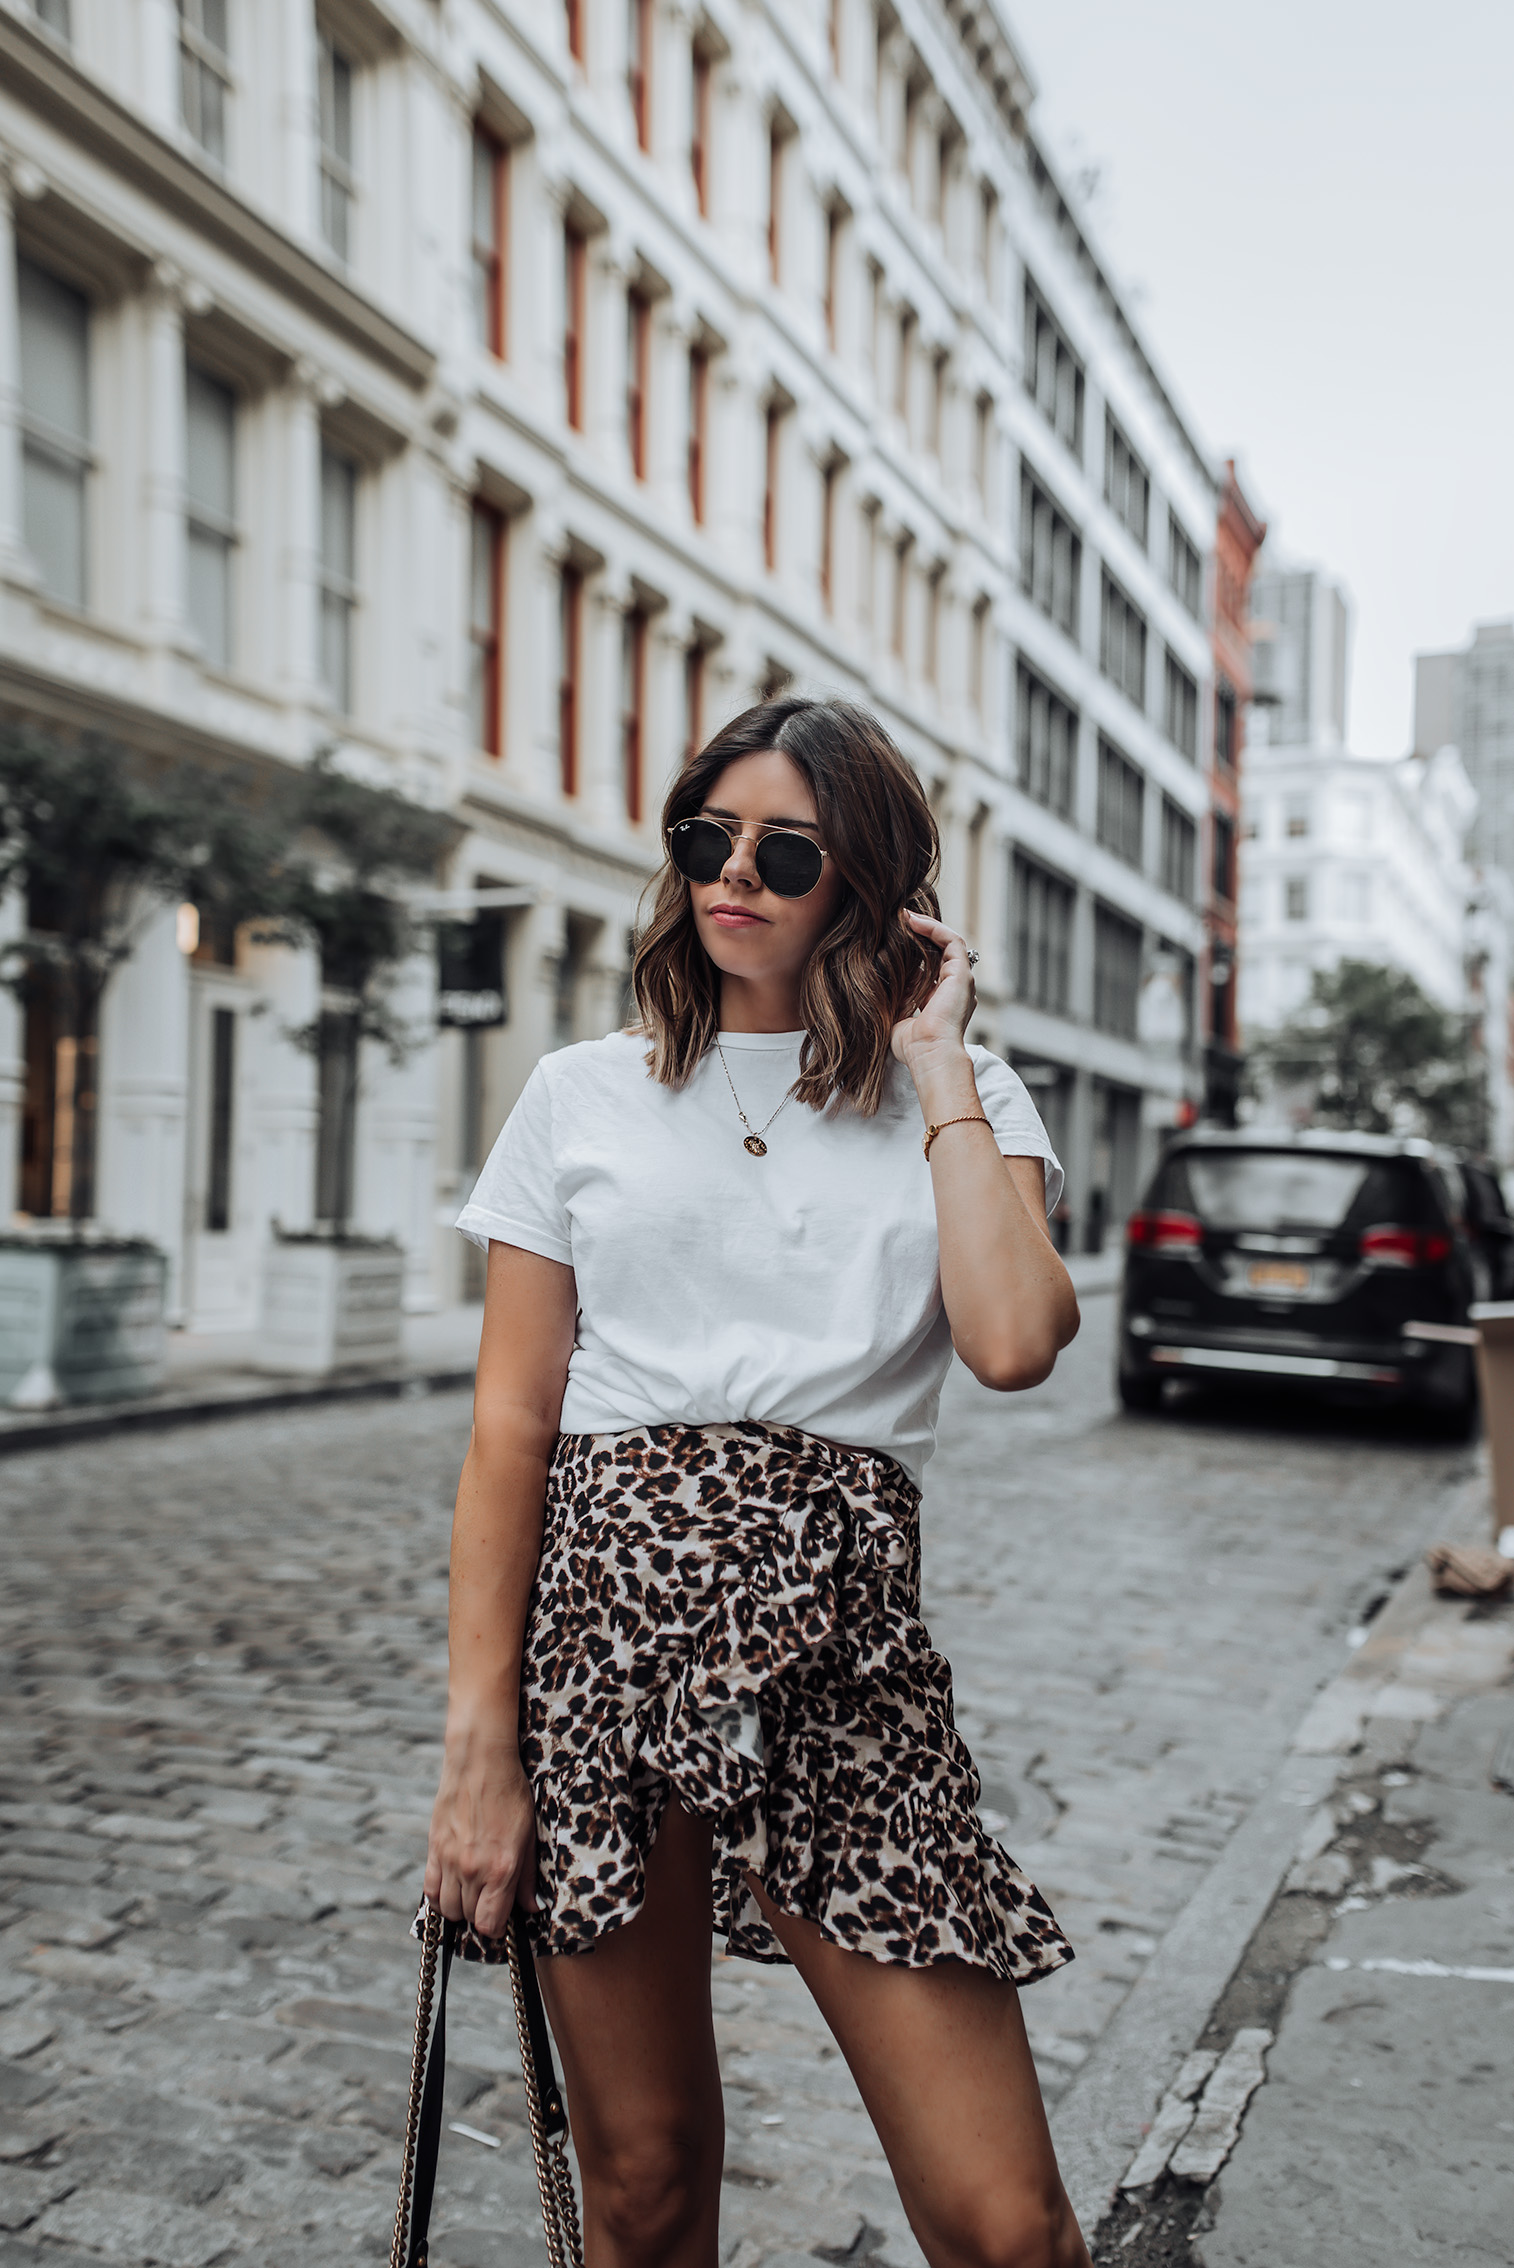 Leopard Skirt (via Urban Outfitters, similar here) | Gucci Bag | #leopardoutfits #gucci #bikerboots #streetstyle